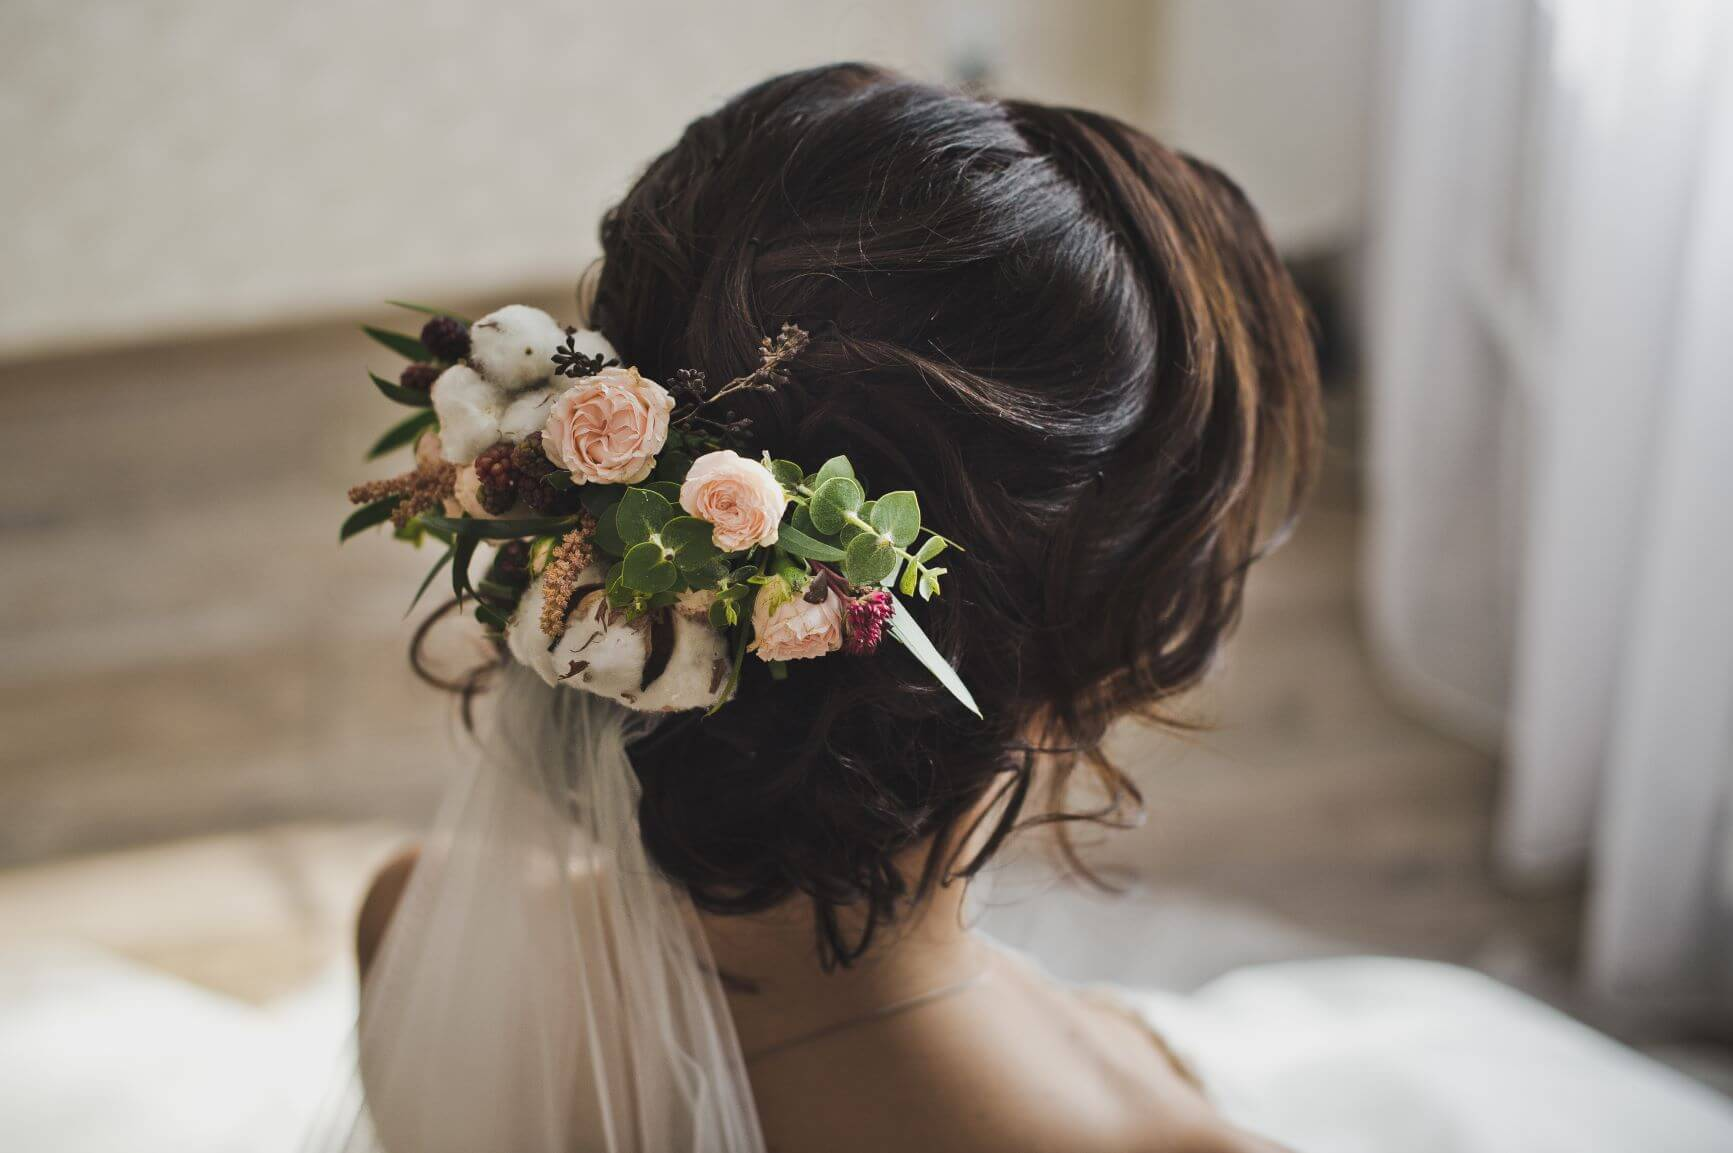 Wedding Day Hairstyling Tips